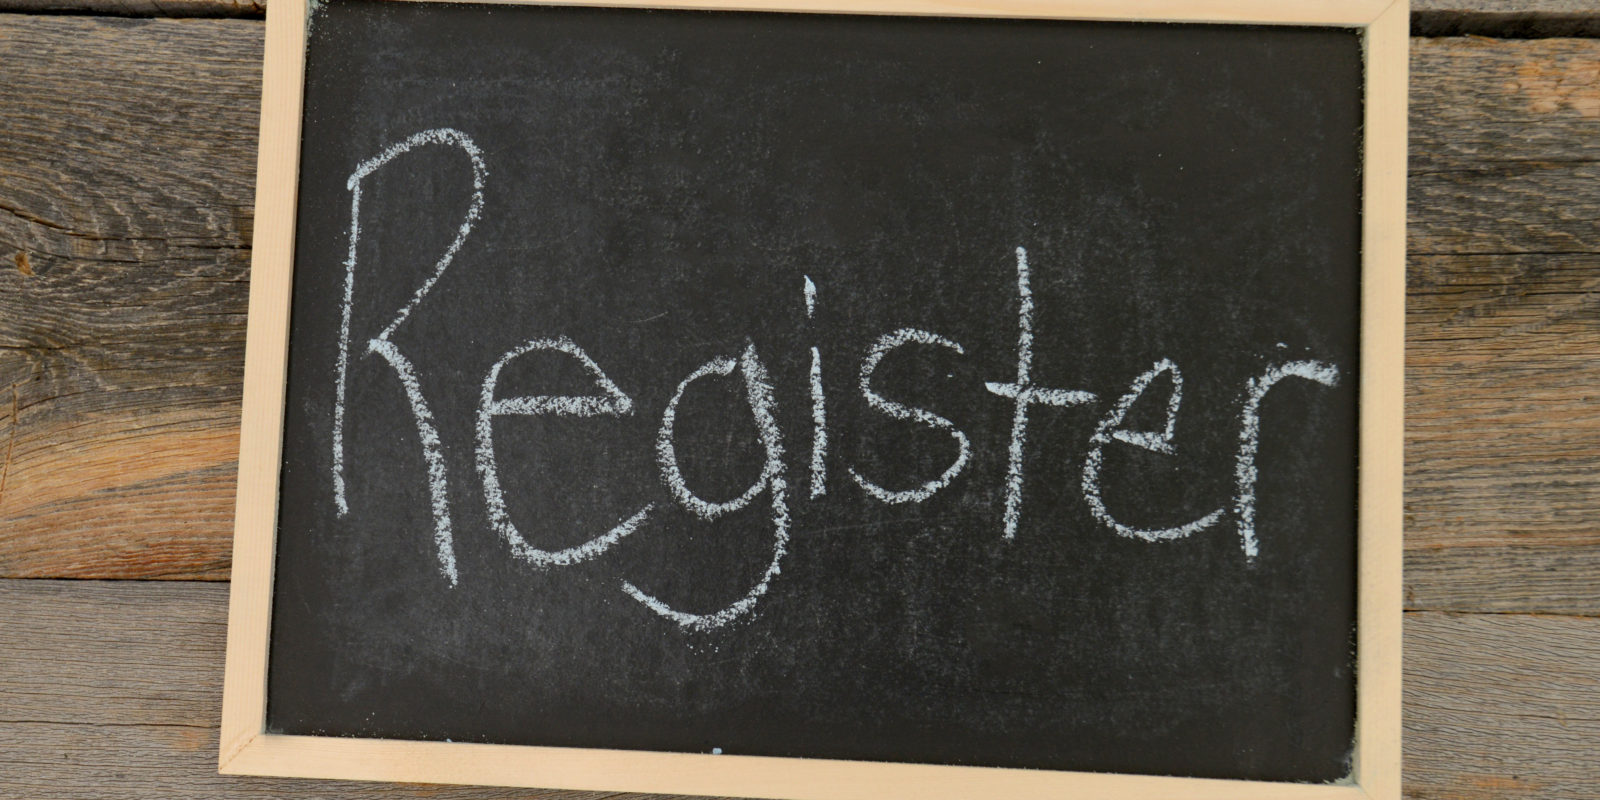 REGISTRATION IS OPEN TO ALL FAMILIES, NEW AND OLD